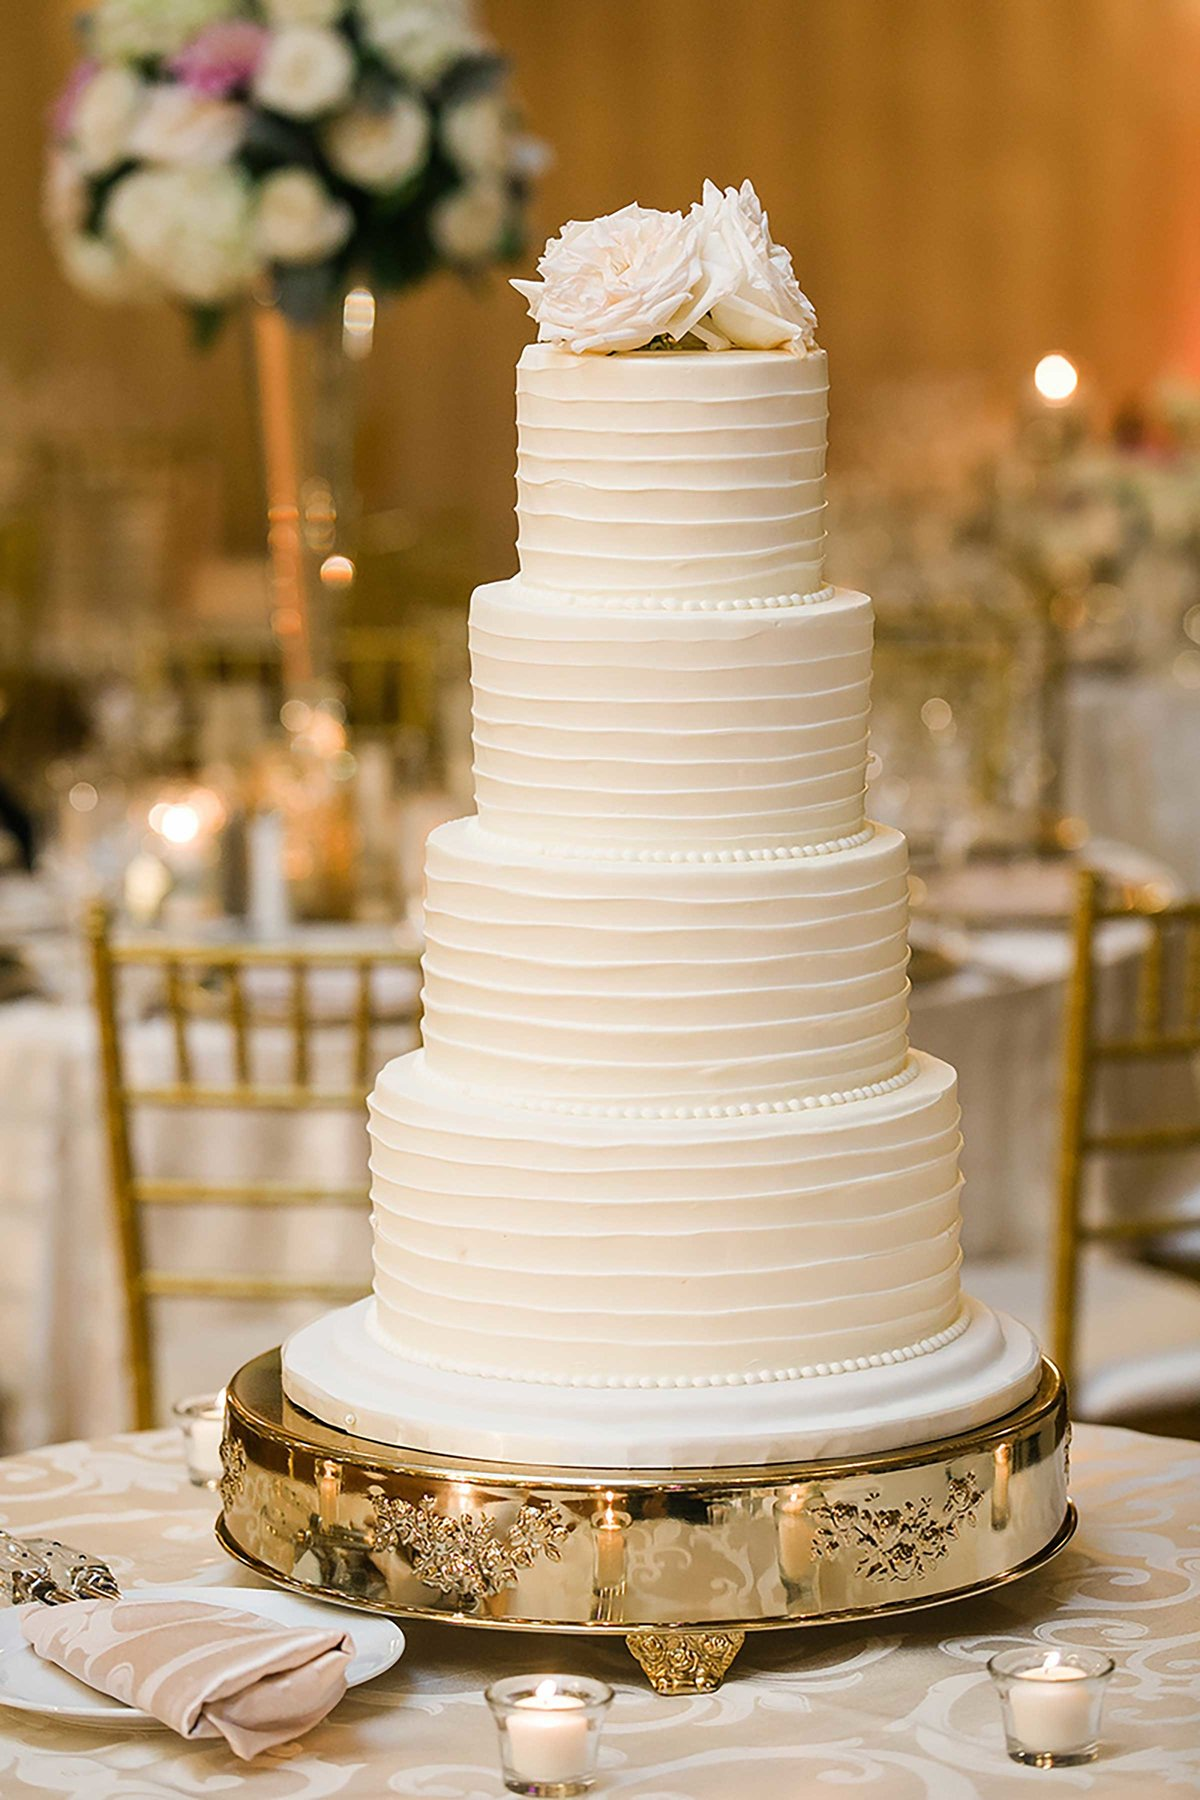 intercontinental-wedding-cake